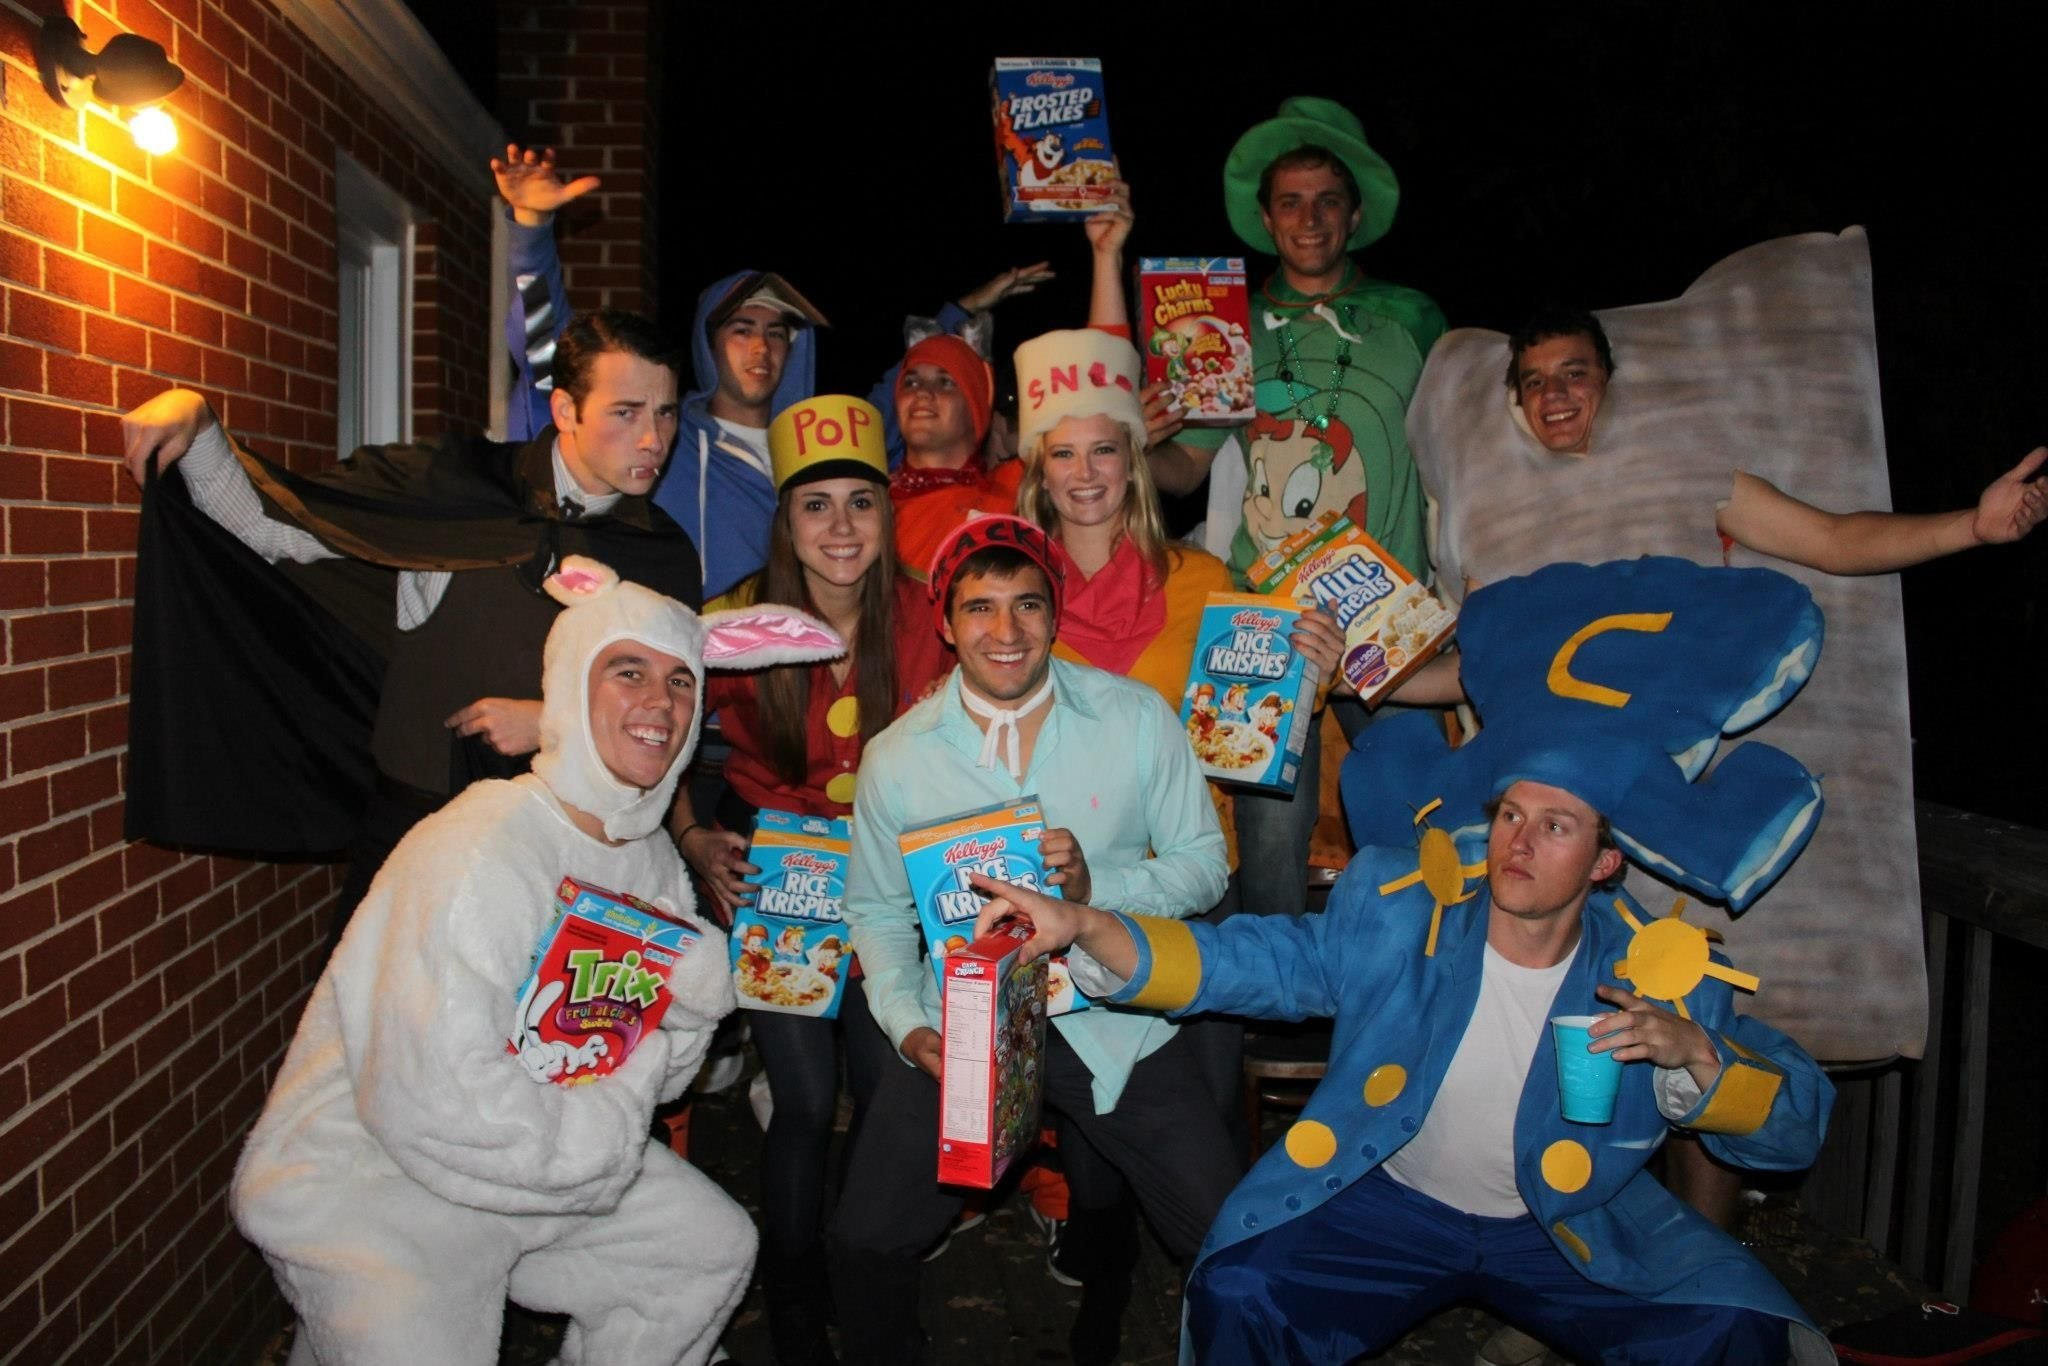 10 Perfect Good Costume Ideas For Groups virginiatech cereal characters good idea fall pinterest 2020